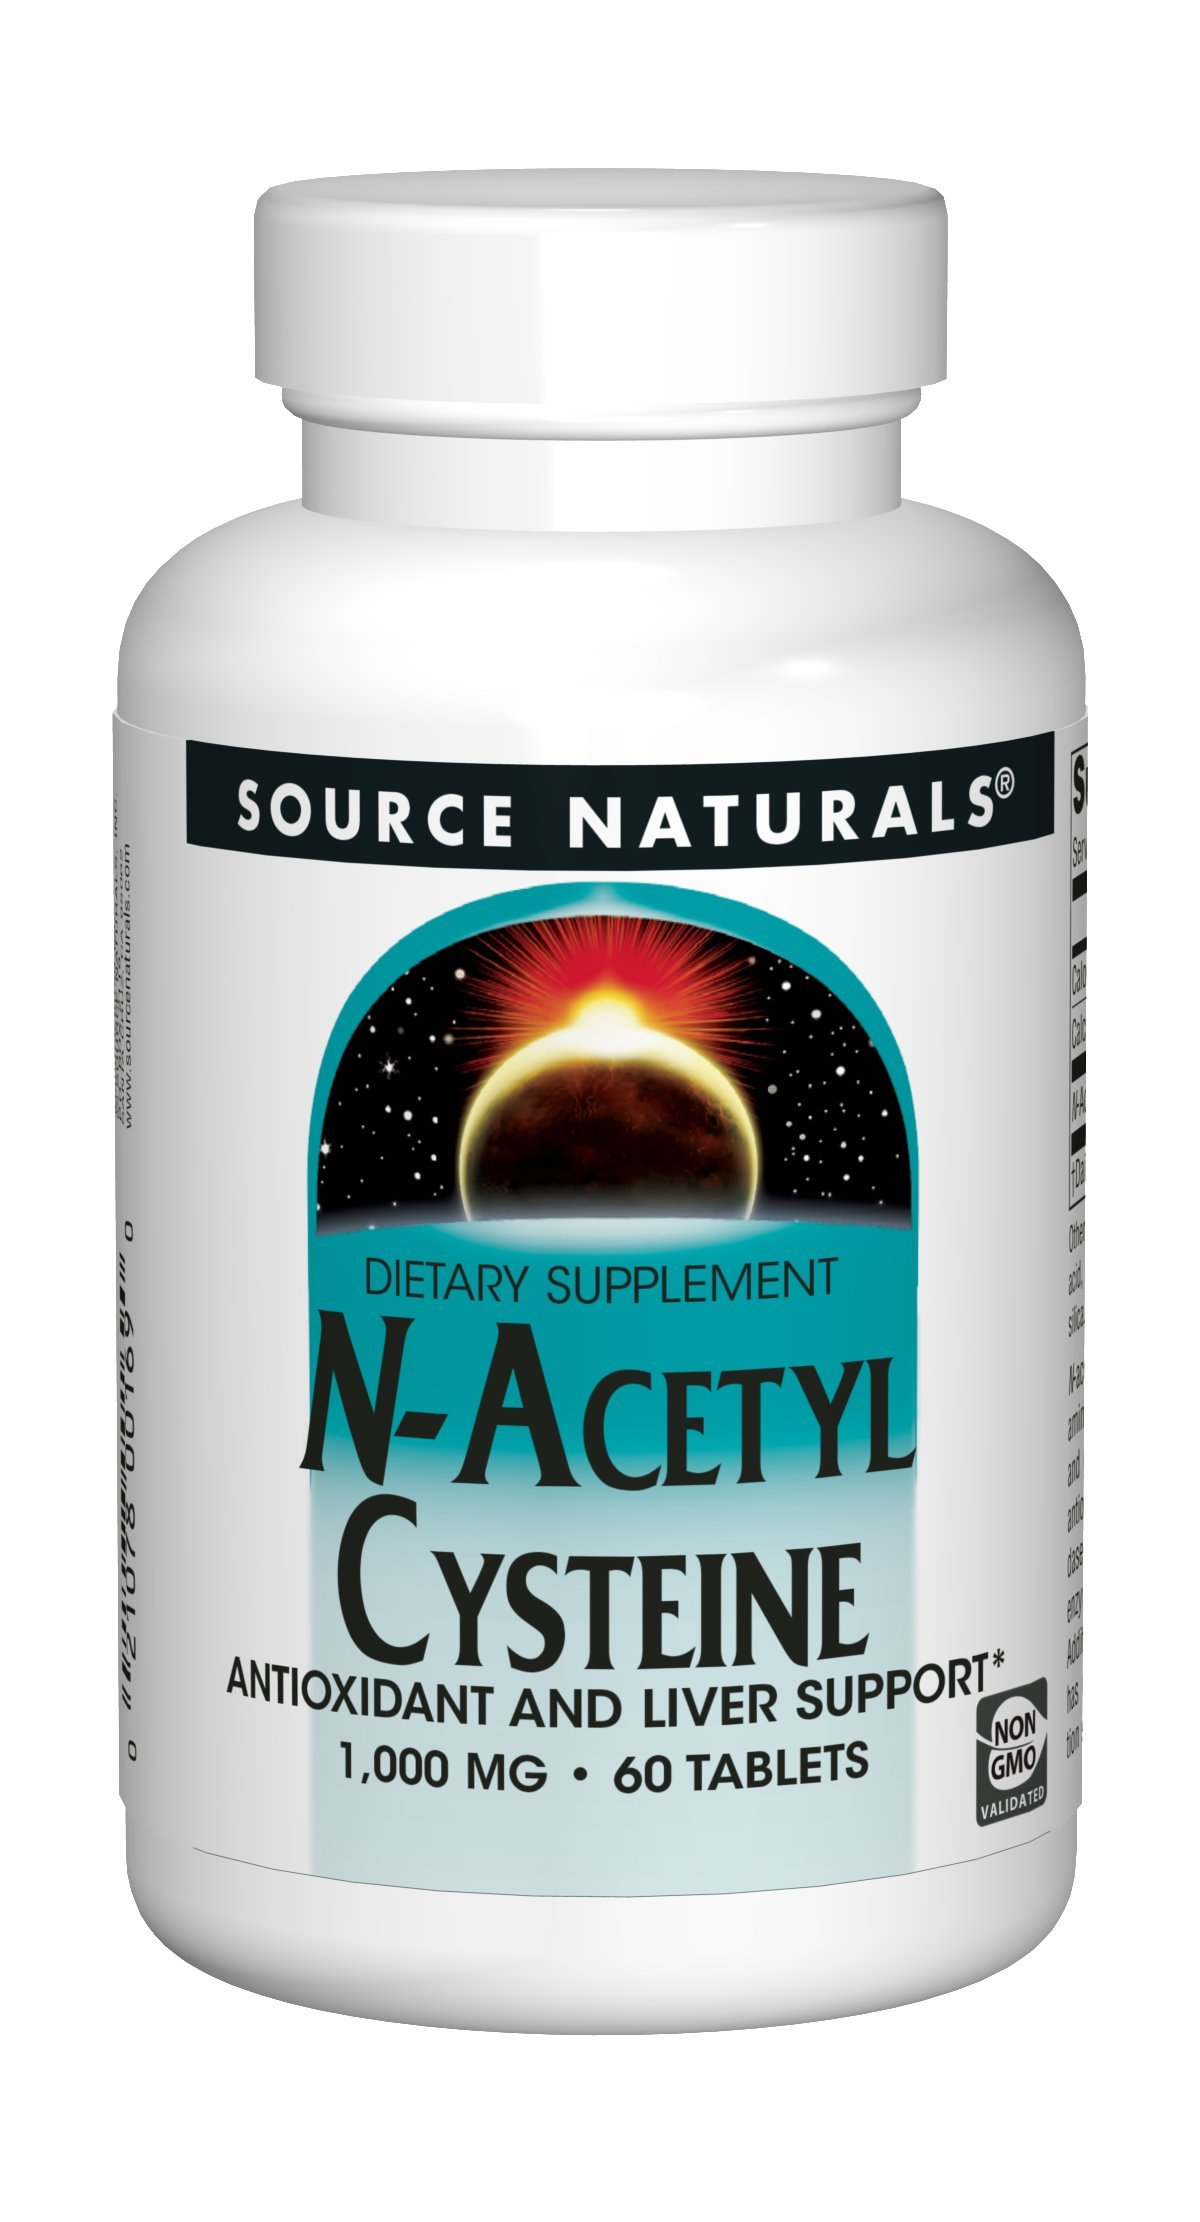 Source Naturals N-Acetyl Cysteine 1000mg Antioxidant - Pure Enzymes - 60 Tablets